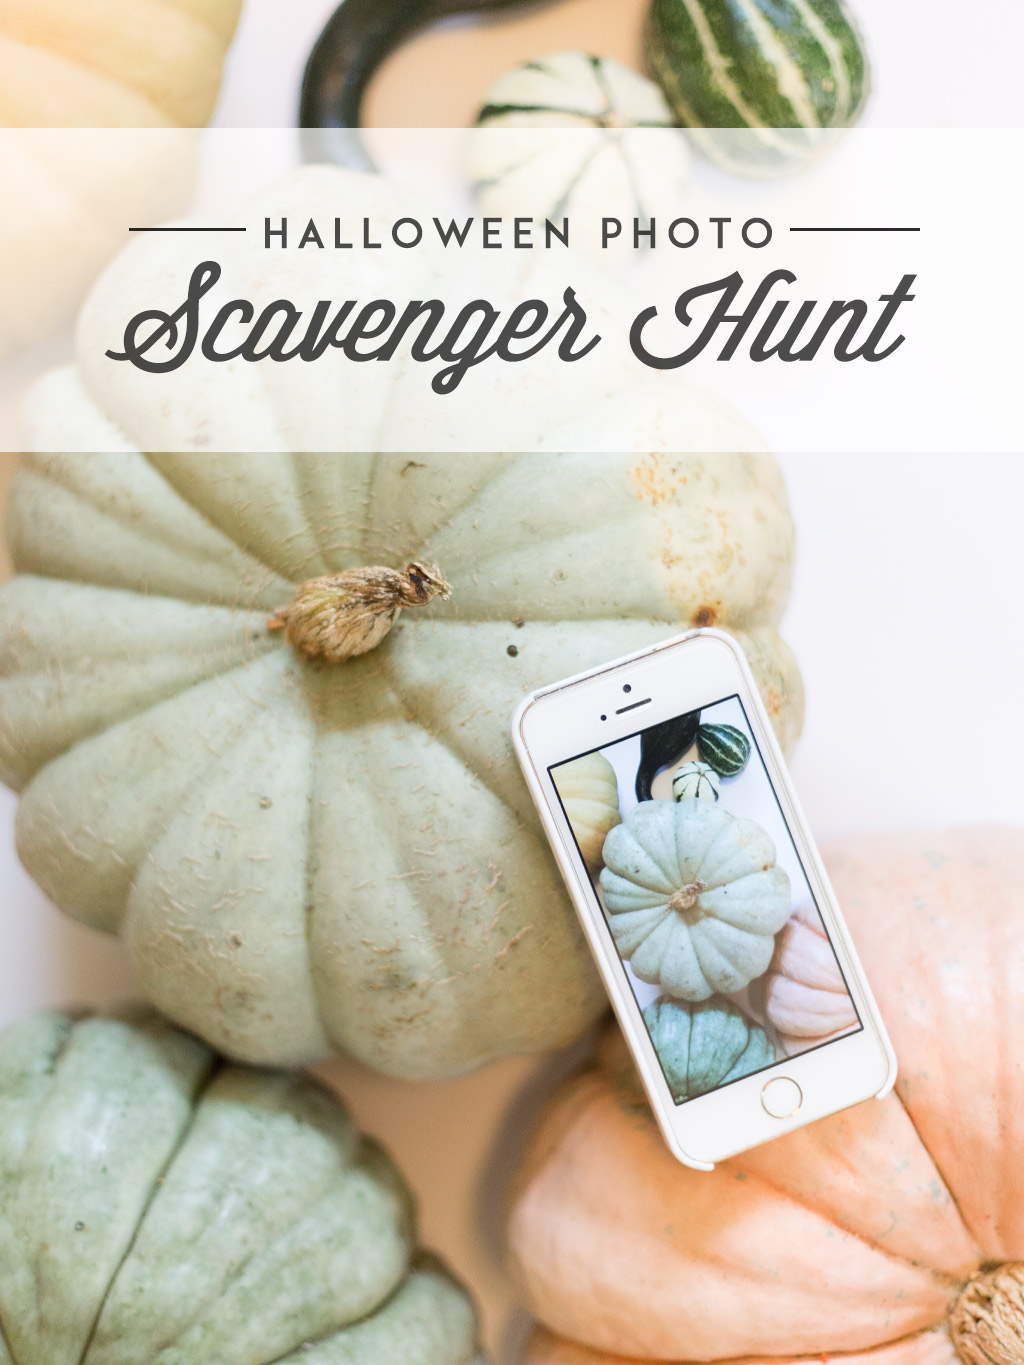 Halloween Photo Scavenger Hunt